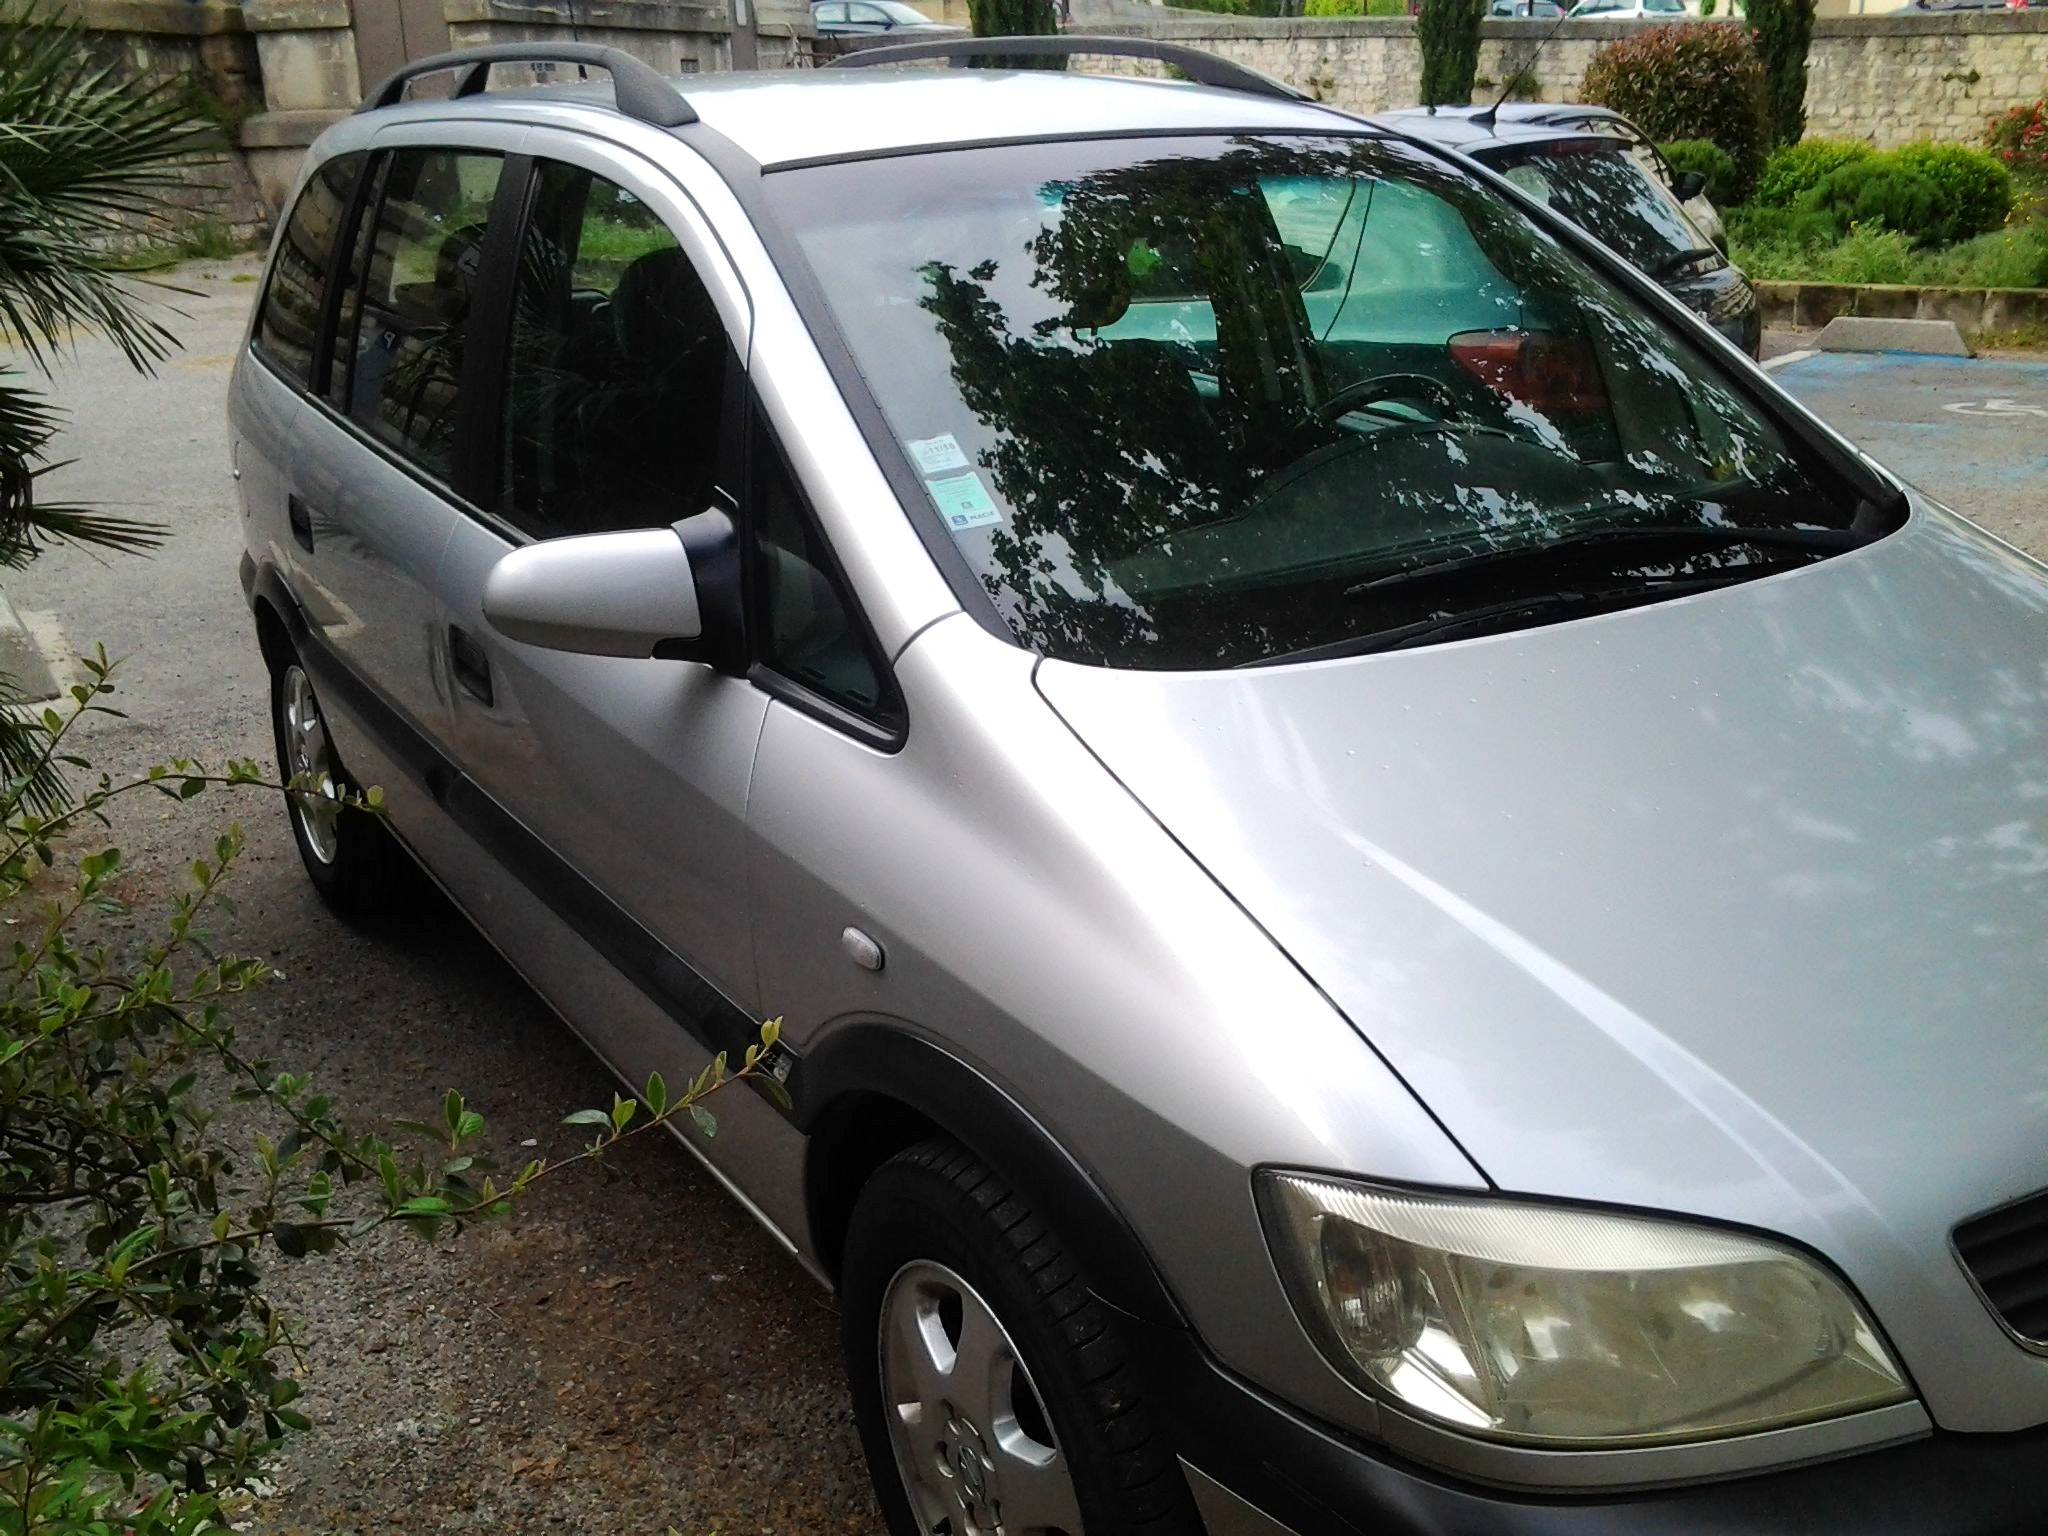 OPEL ZAFIRA 1.8 ELEGANCE, 1999, Essence, 7 places